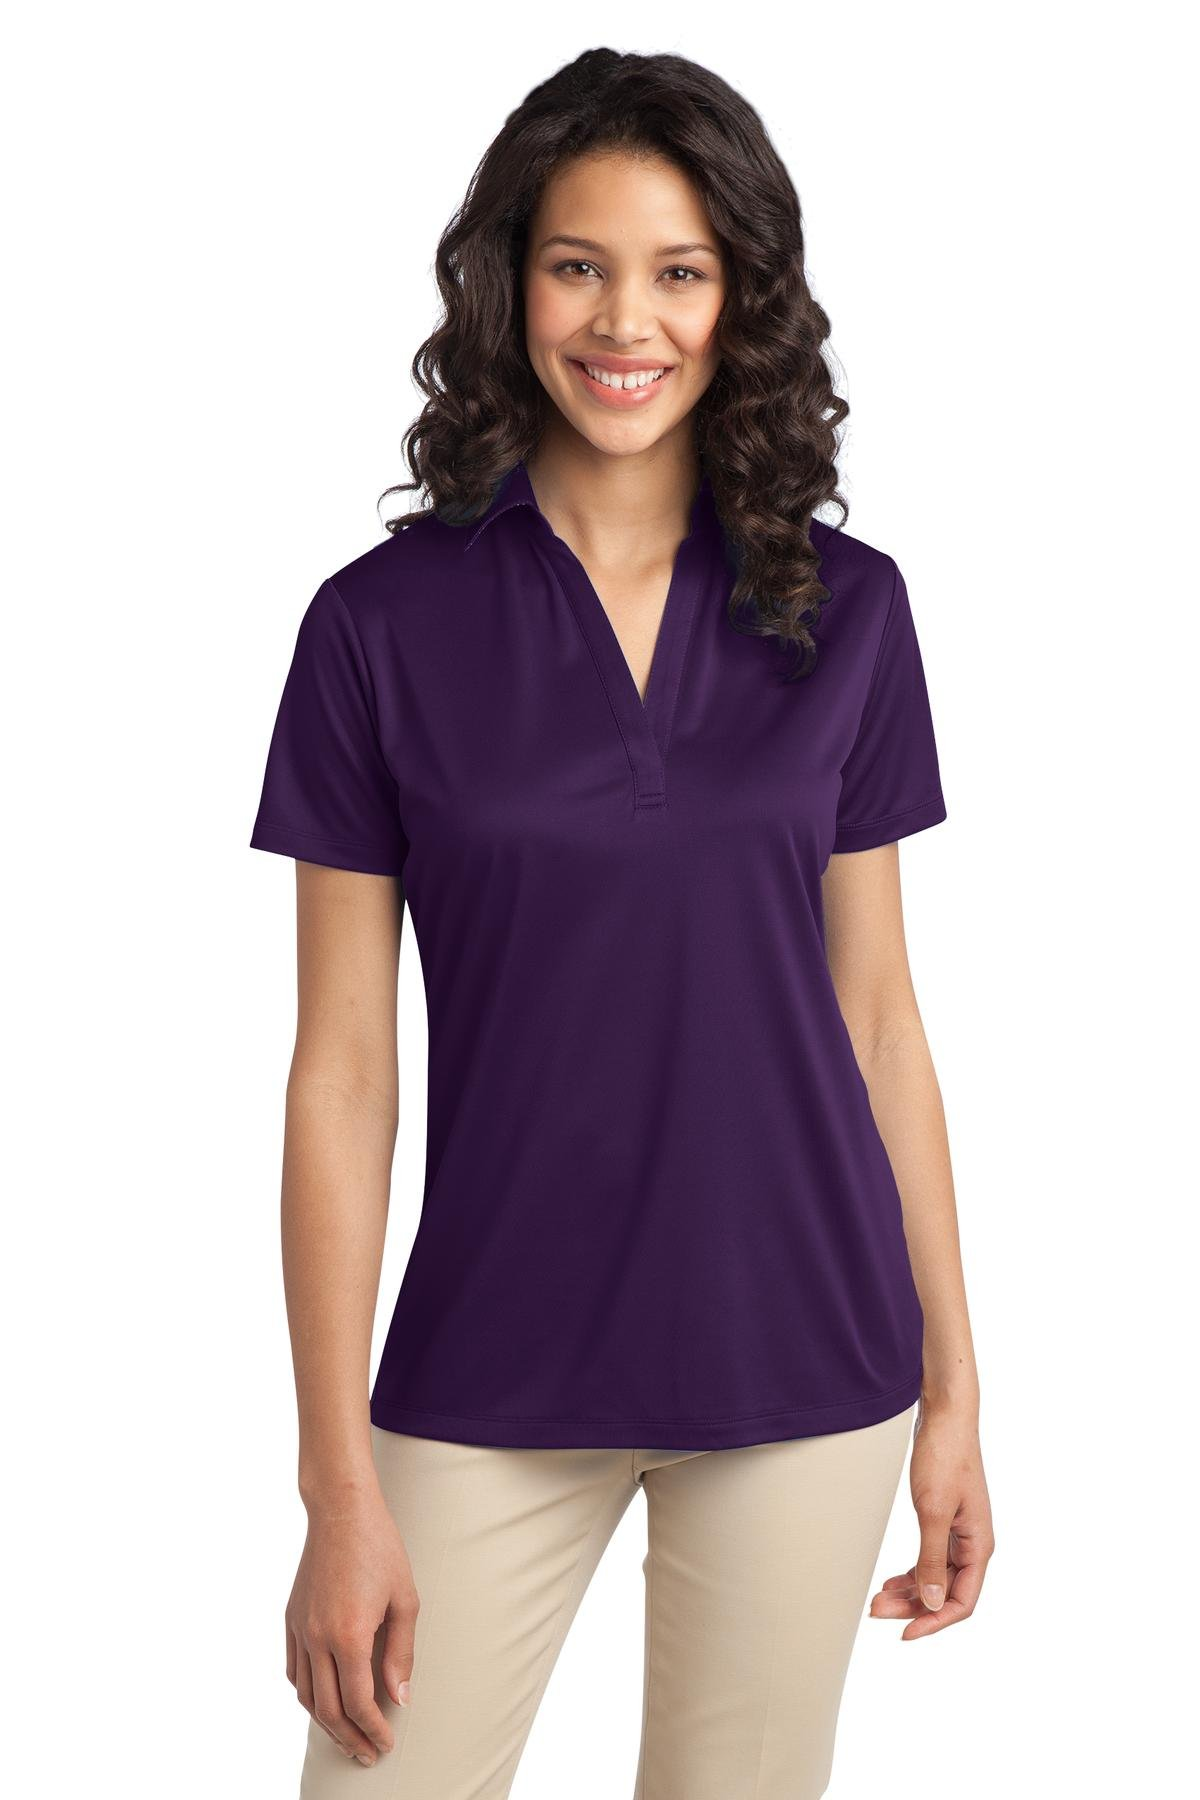 Port Authority Women's Silk Touch Performance Polo XXL Bright Purple